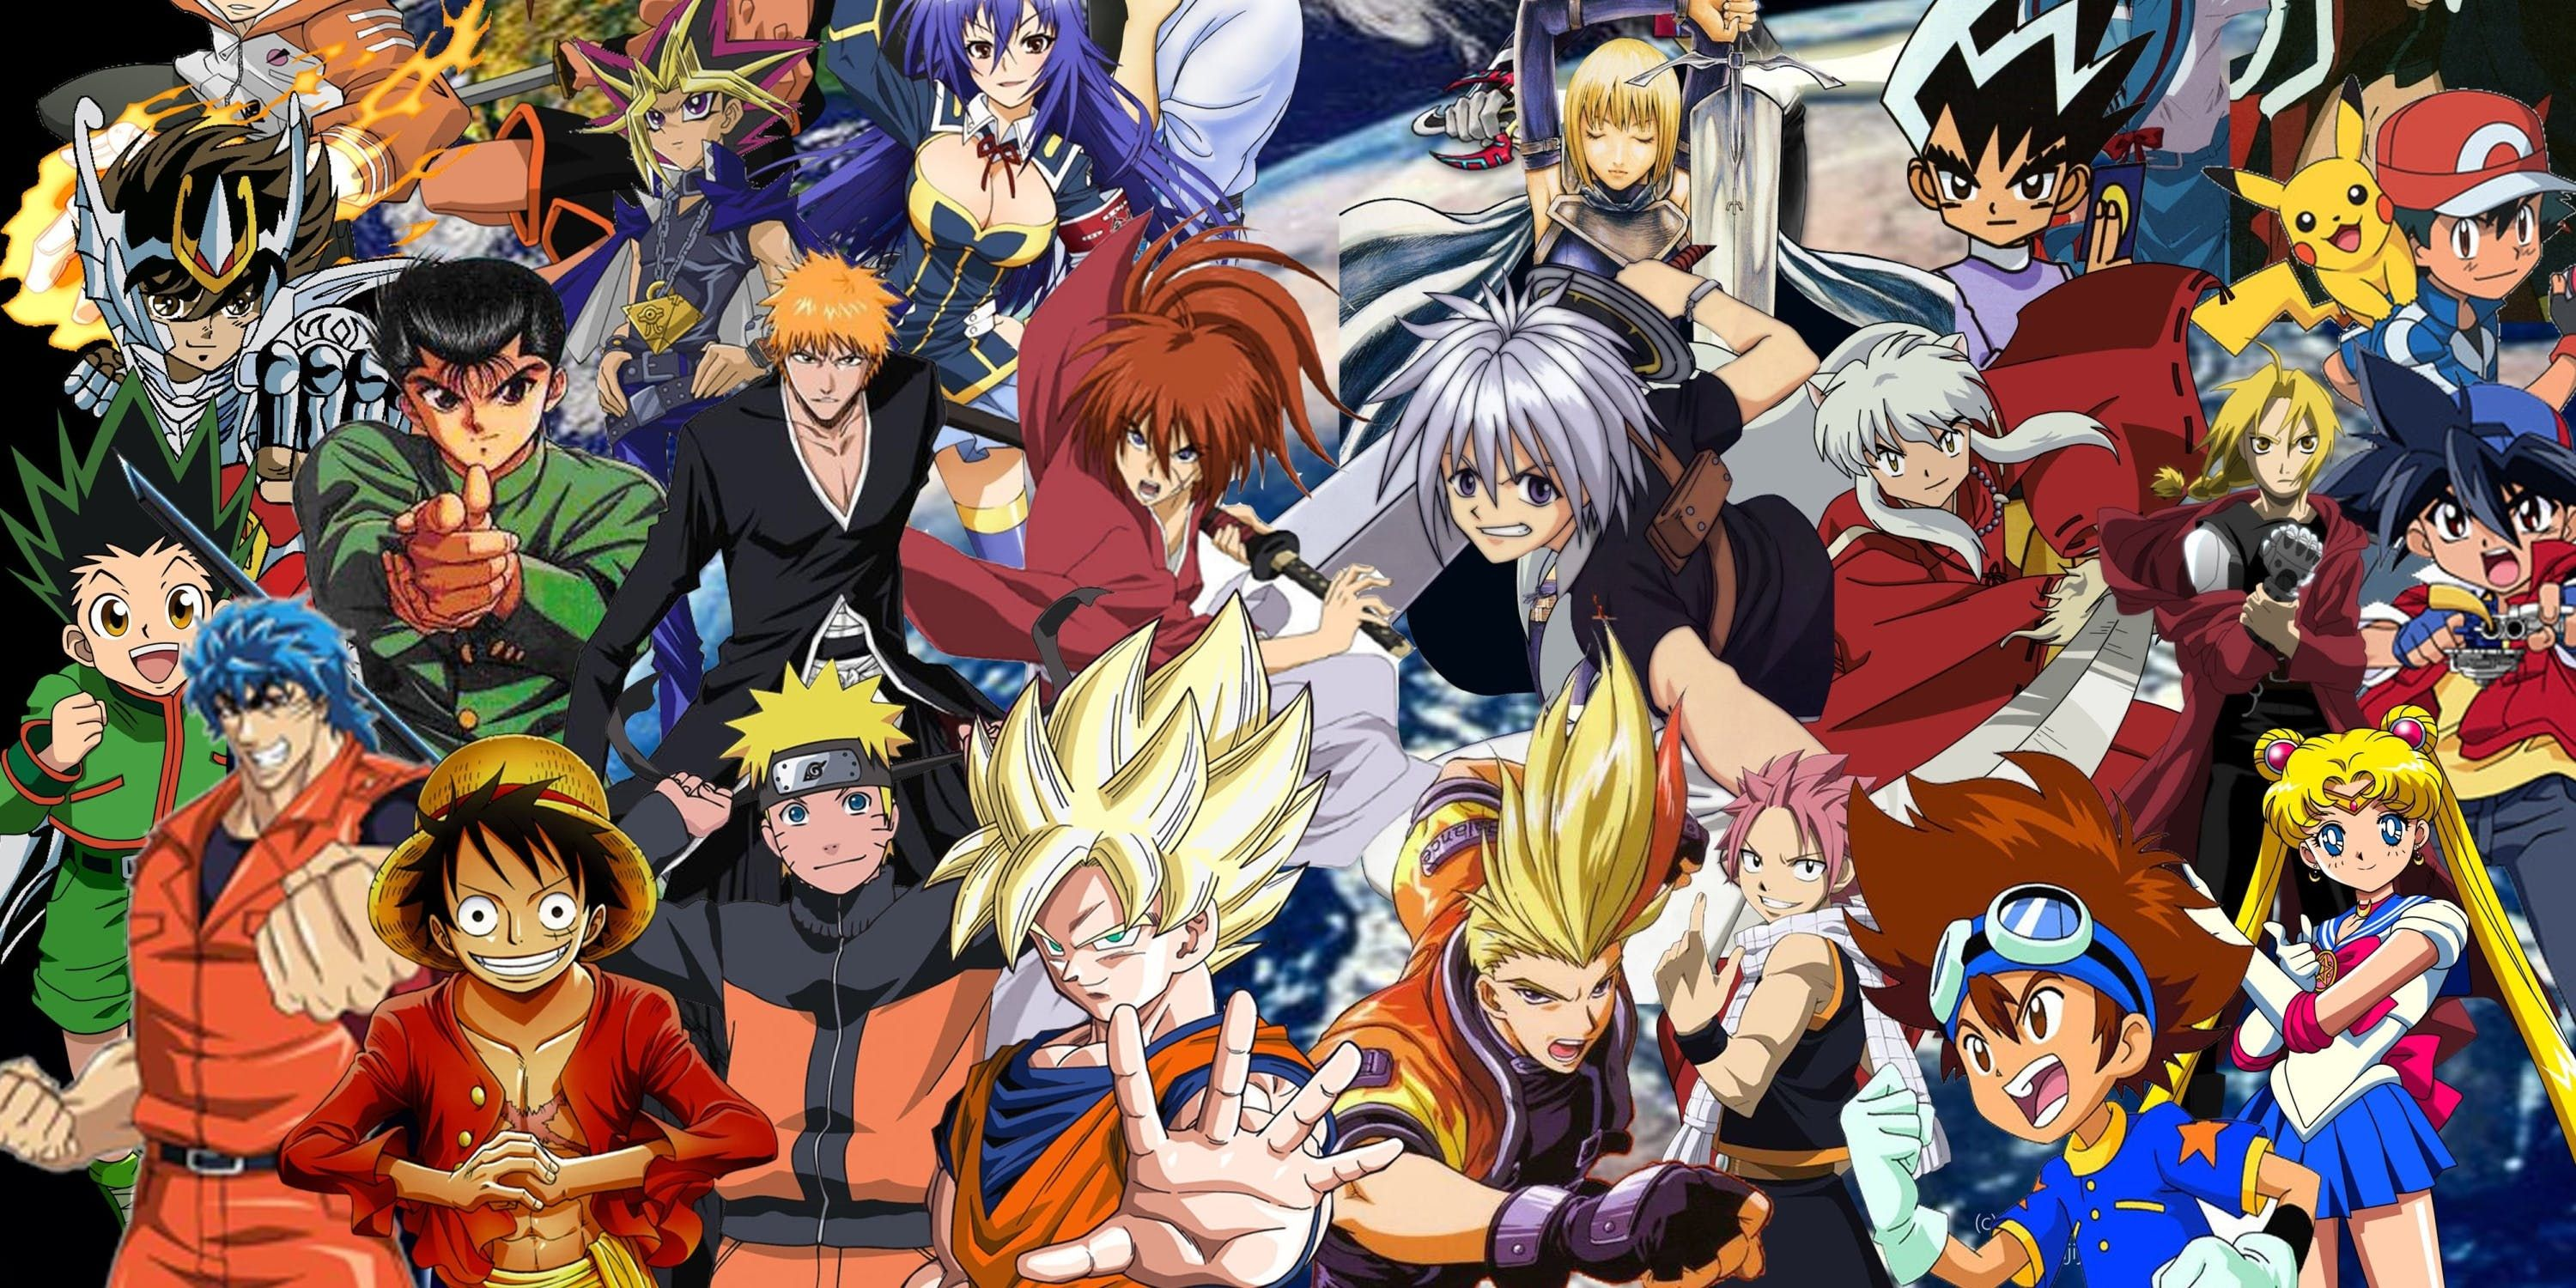 Anime And Manga Universe Mystery Mixed Gift Box Toys Cards Collectibles And More A Mix Of Vintage And New Prod Free Anime Characters Anime Anime Crossover